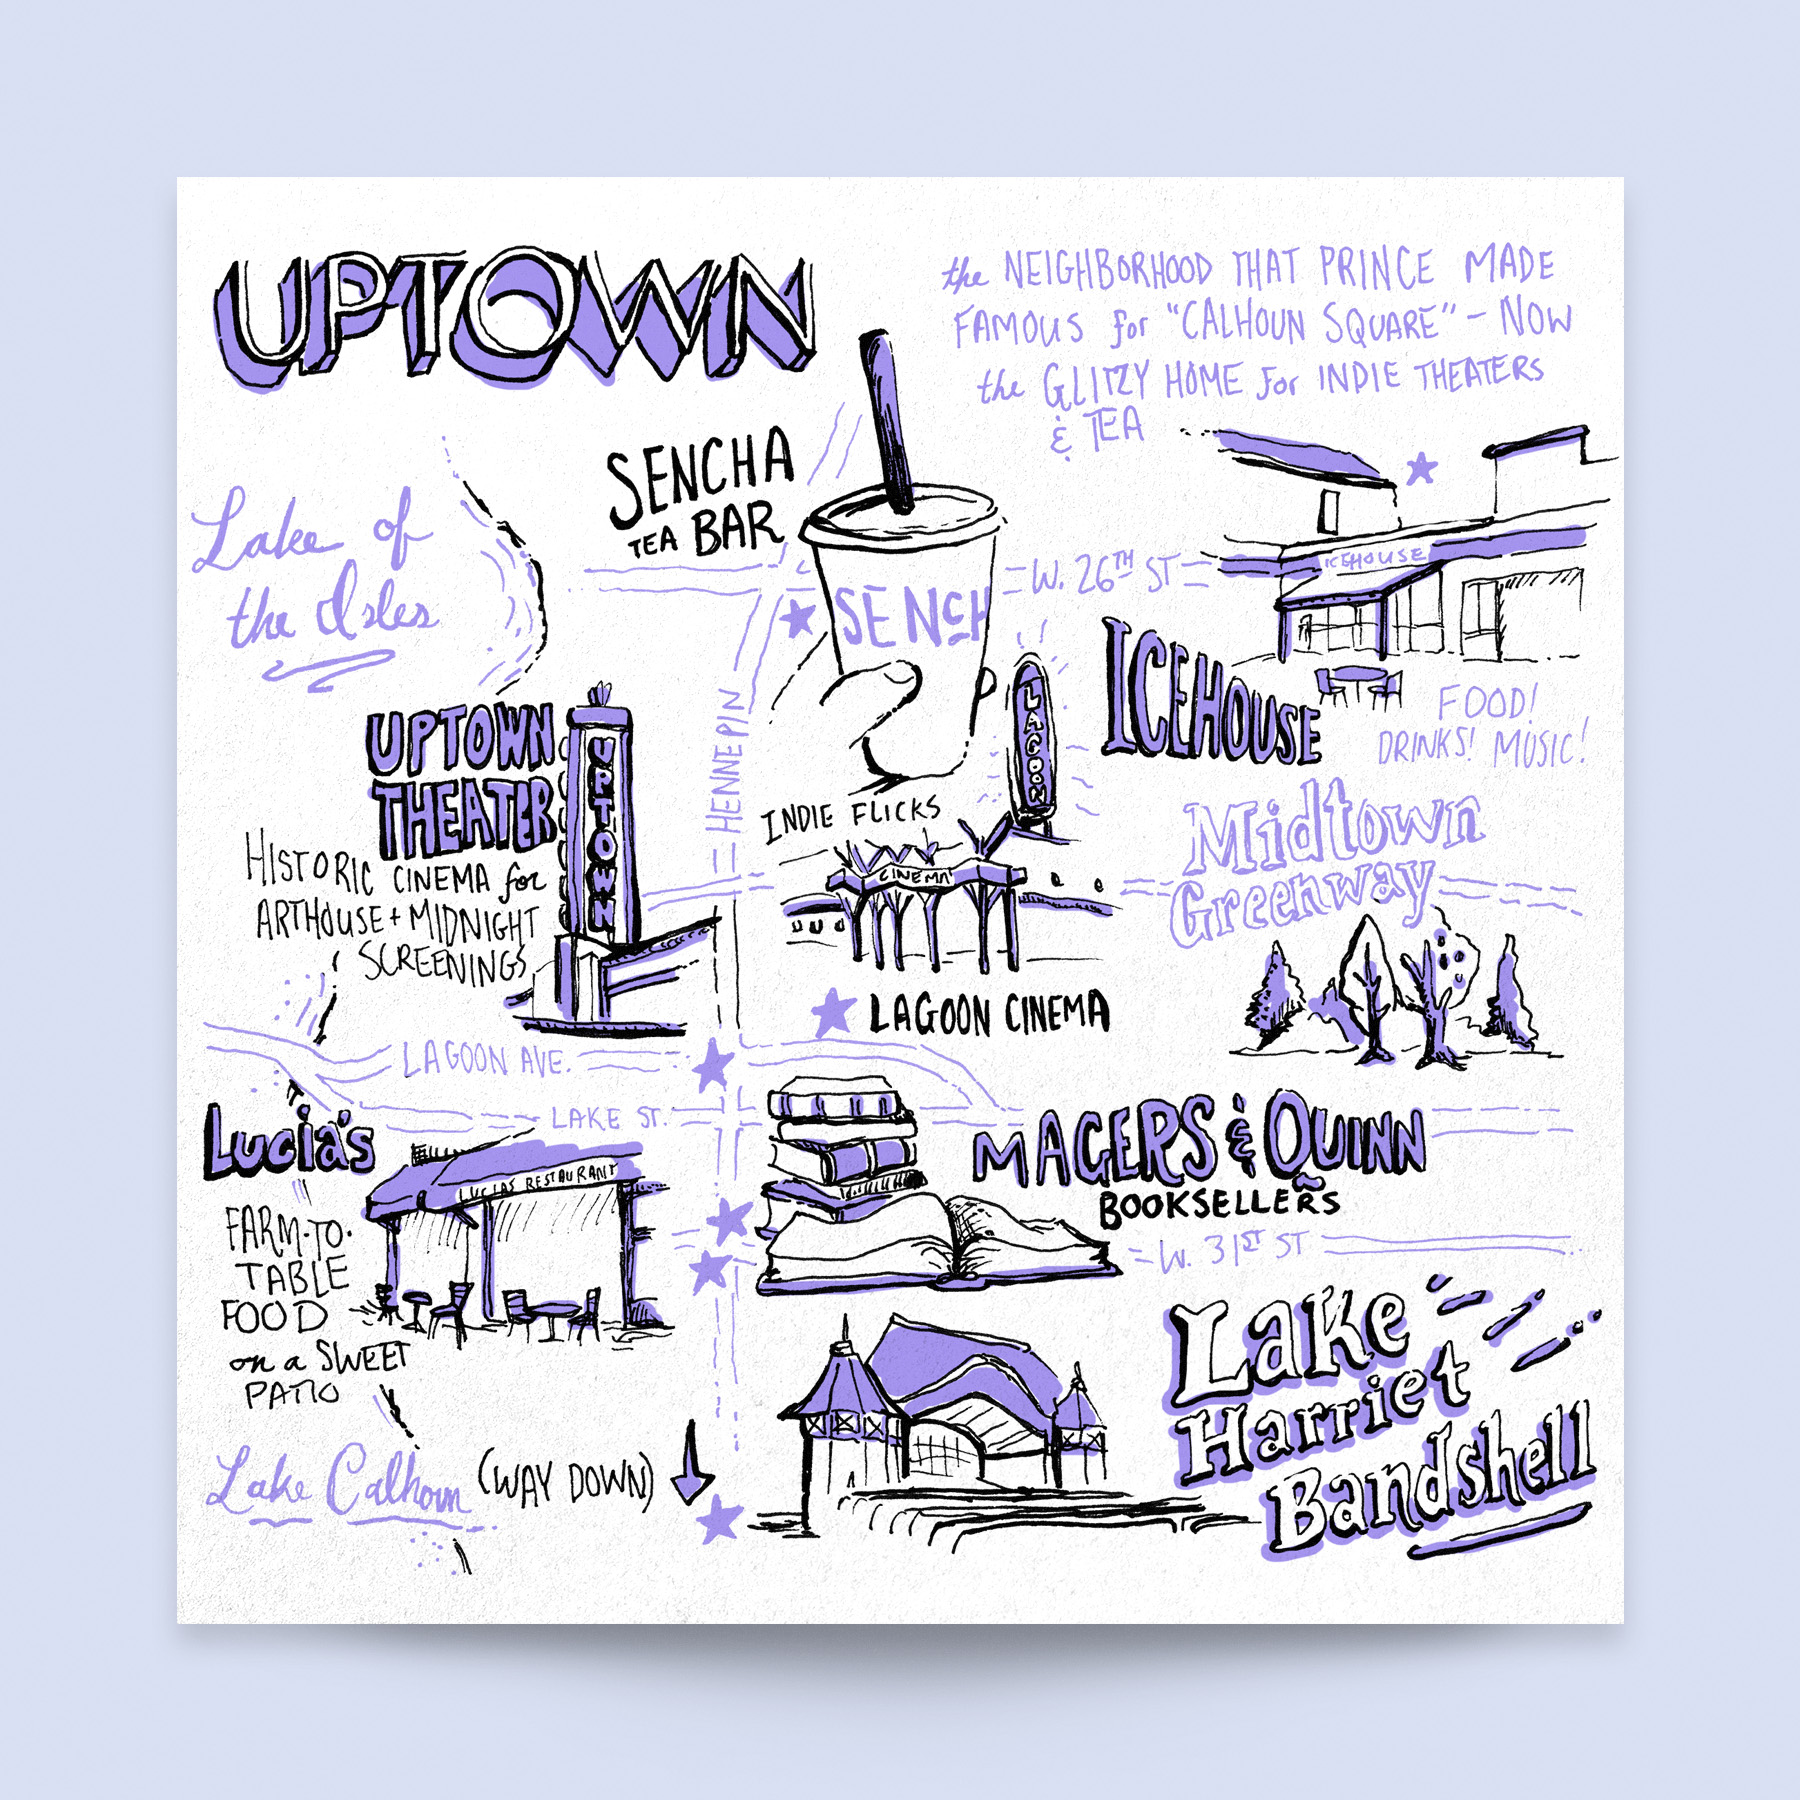 The Uptown neighborhood city map, hand illustrated for Neenah Paper at the AIGA Design Conference 2017. Shows: Sencha Tea Bar, Ice House, Lagoon Cinema, Theatre, Magers and Quinn, Lucia's, Lake Harriet Bandshell